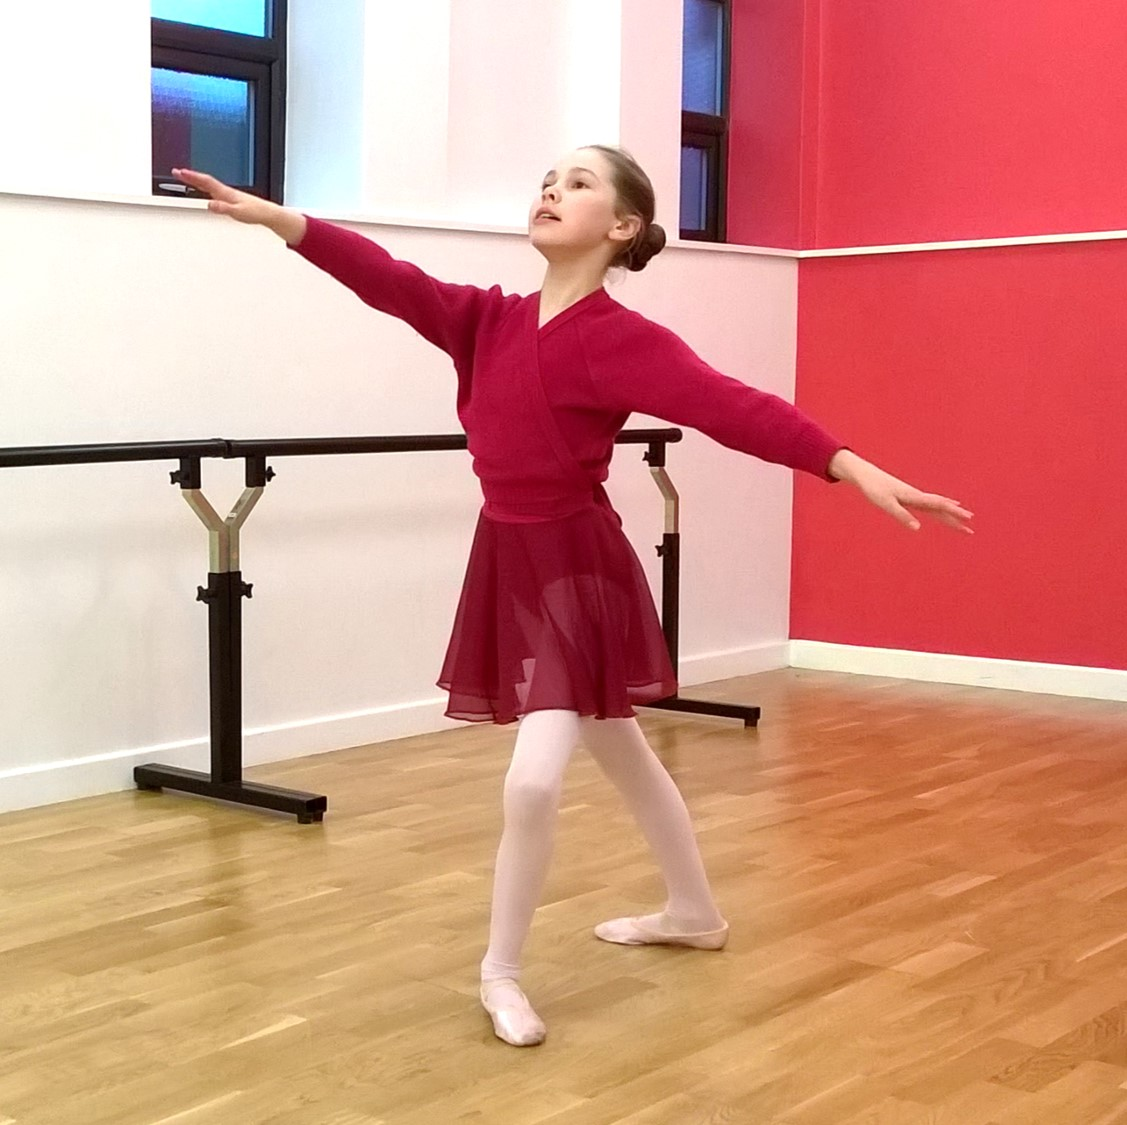 ISTD Ballet syllabus classes at SK Dance Studio, Appley Bridge, Wigan